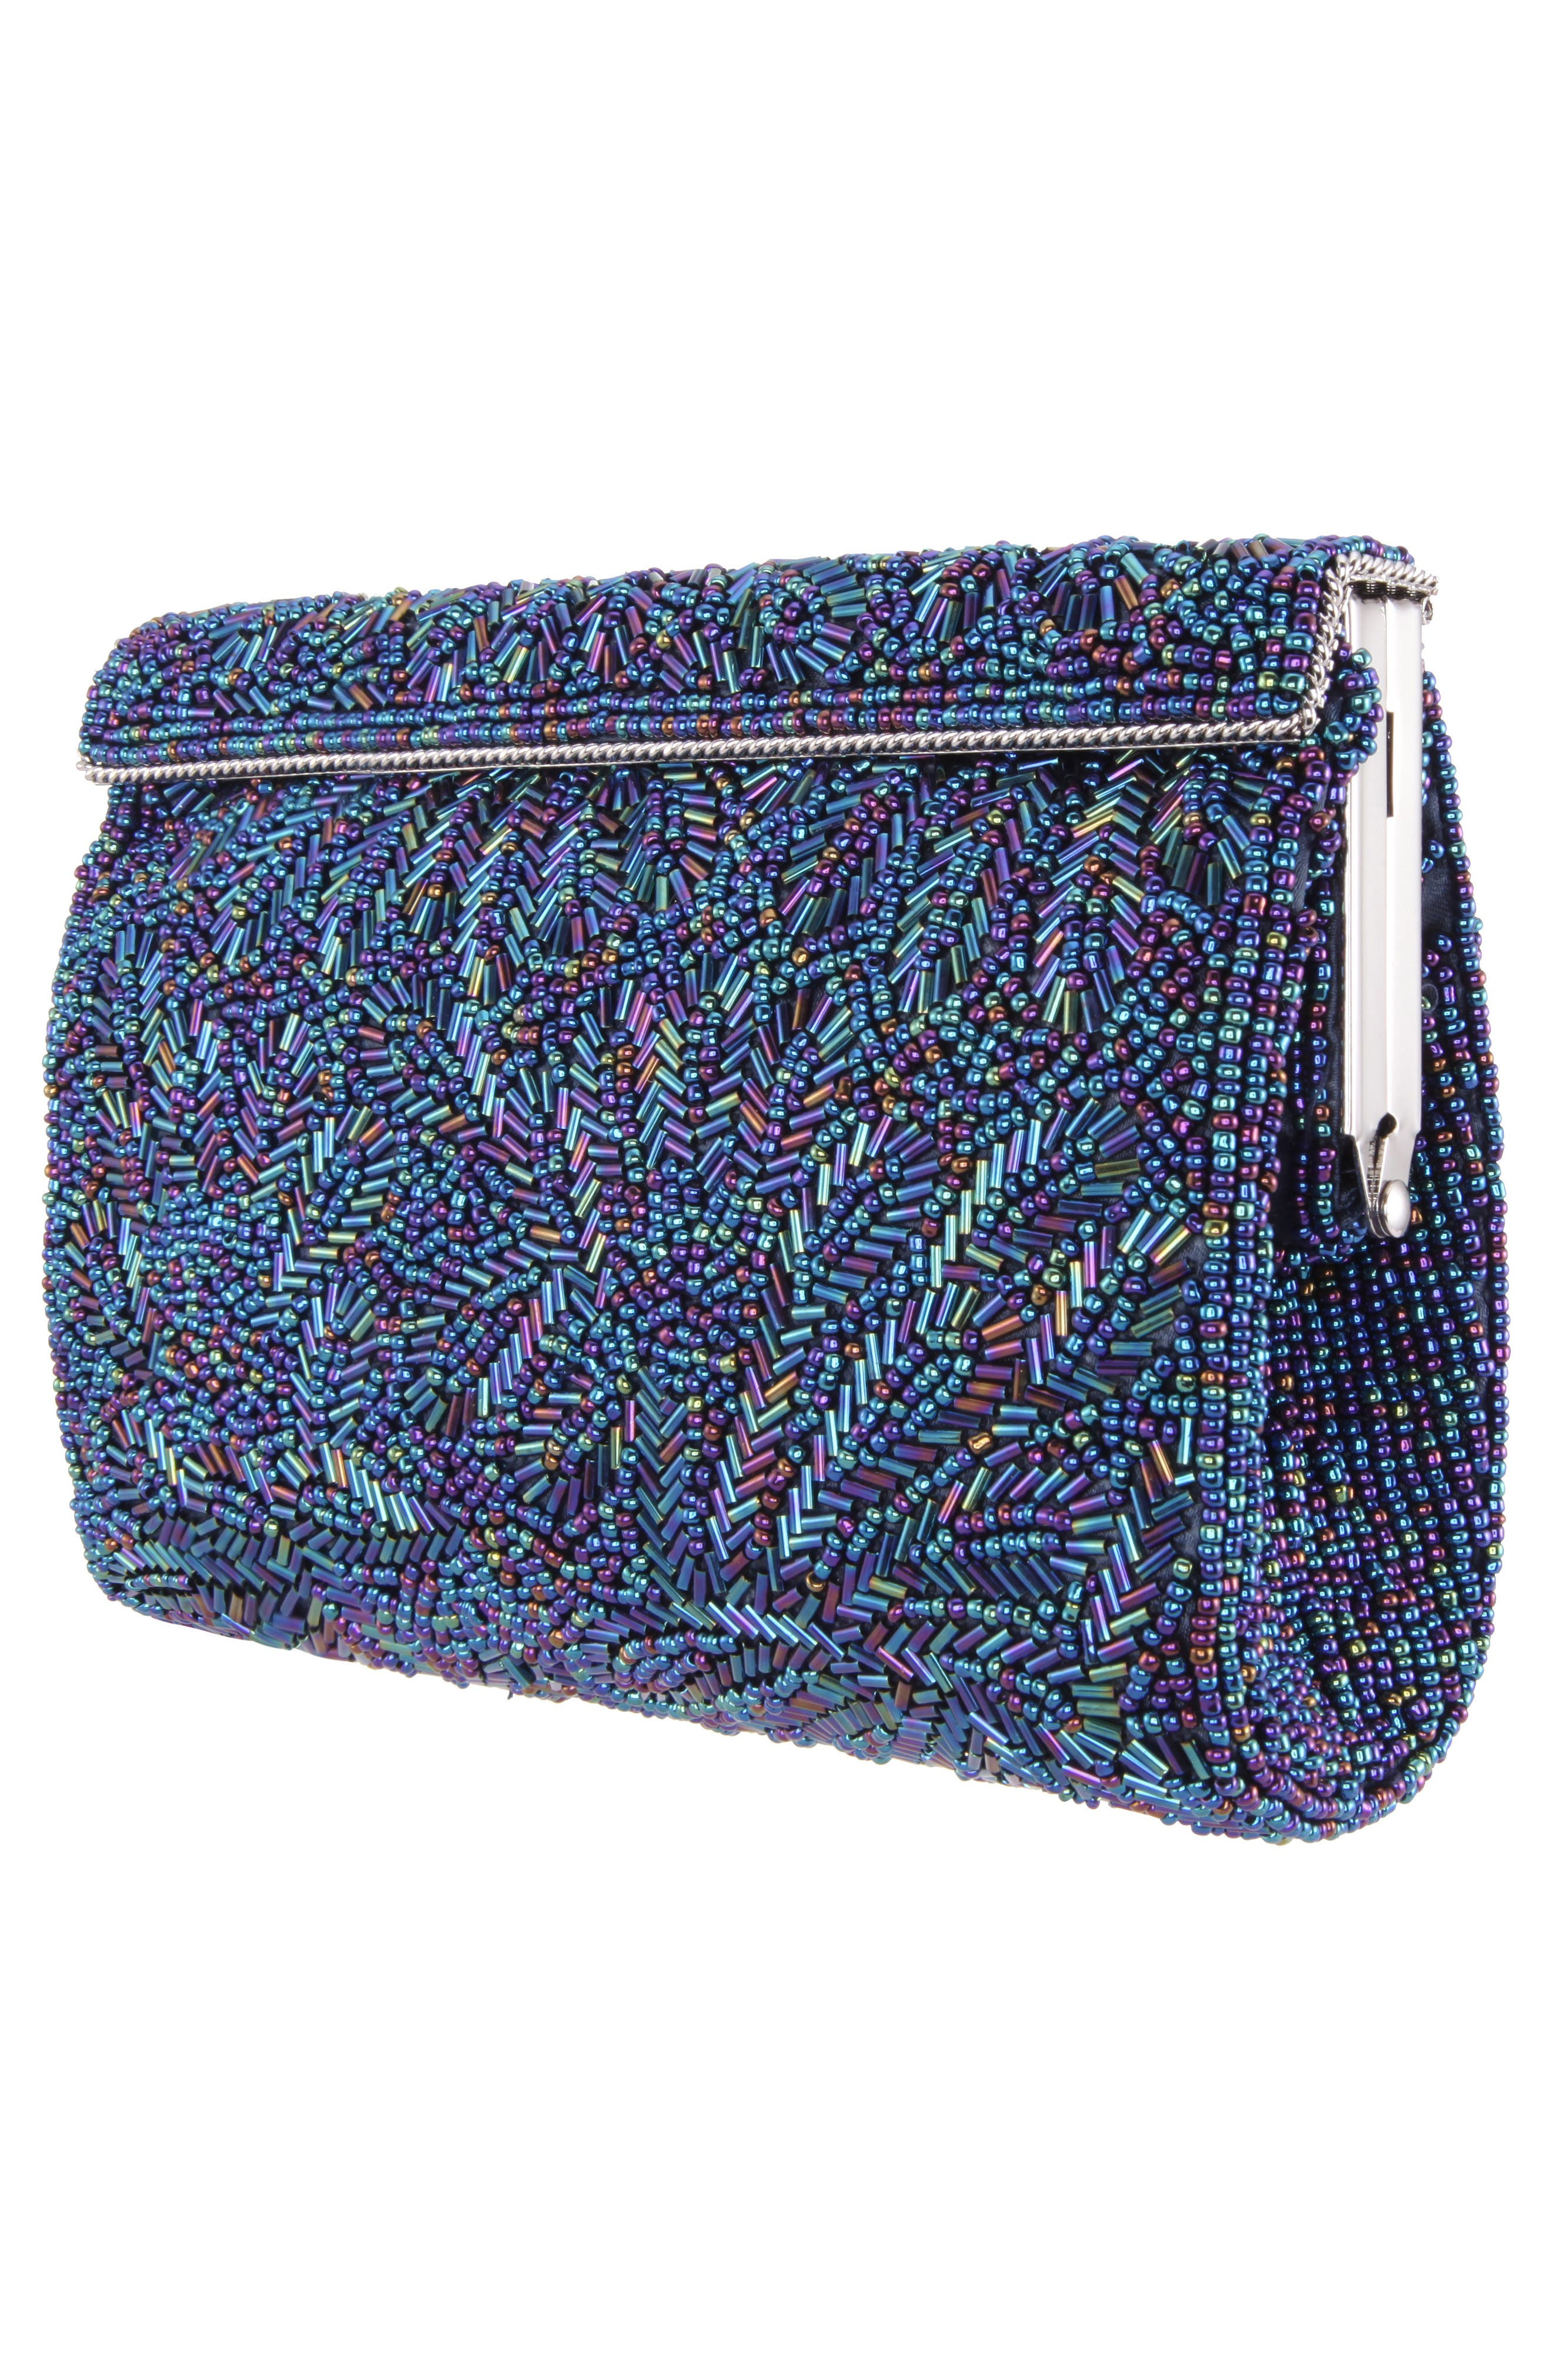 'Meadow' Beaded Frame Clutch,                             Alternate thumbnail 4, color,                             472